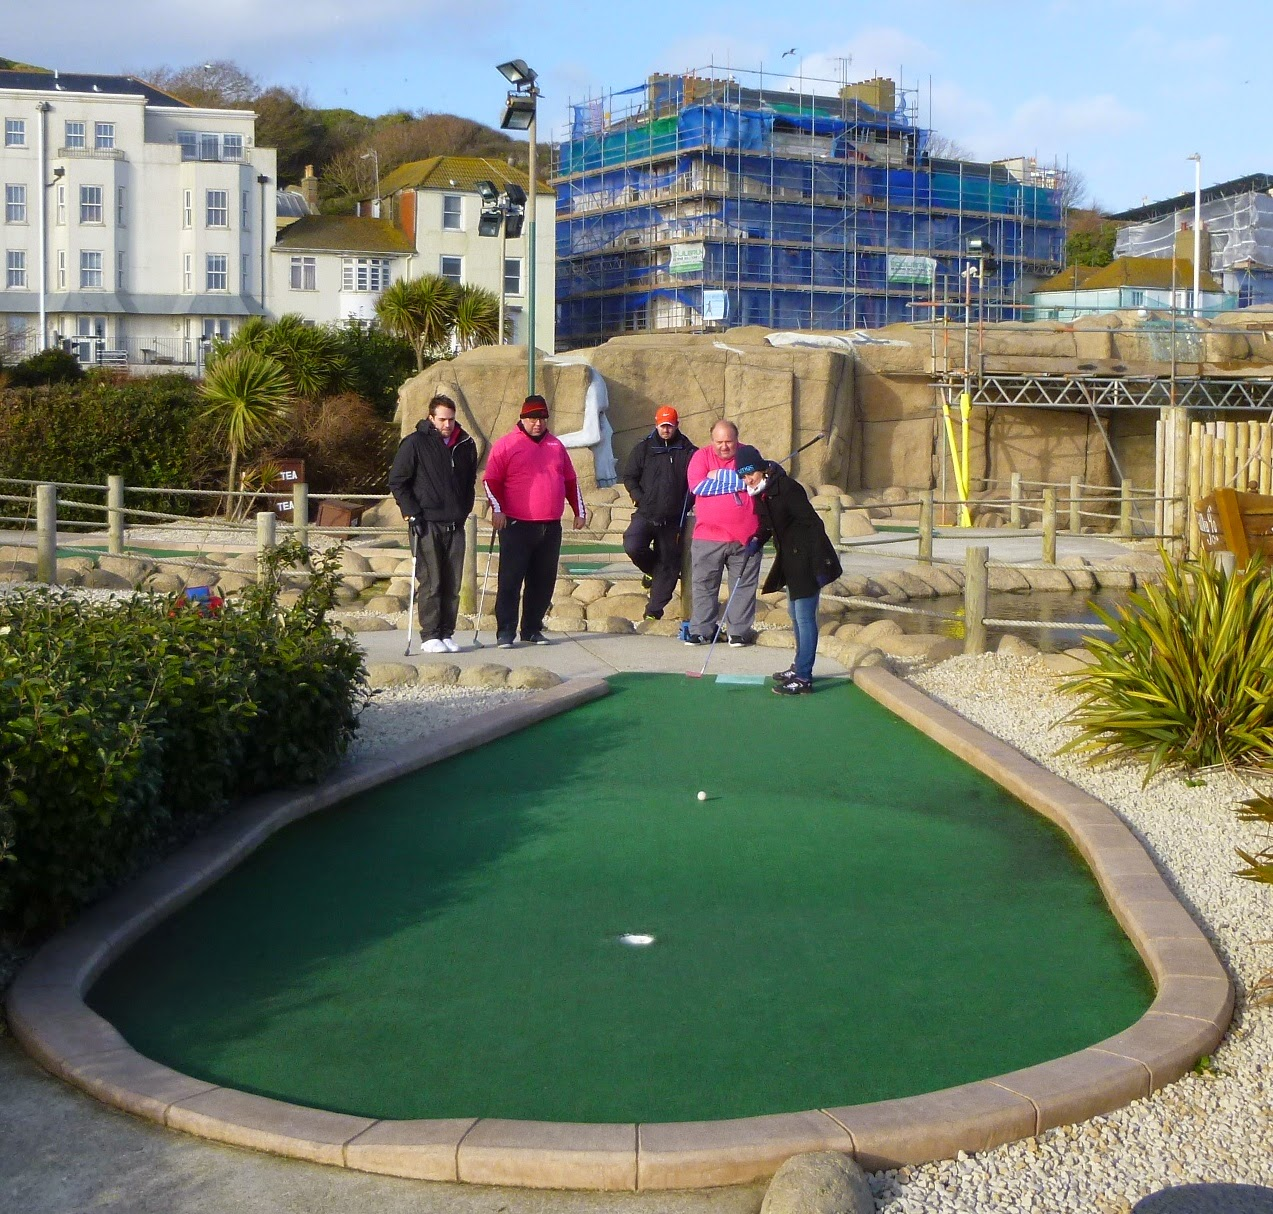 Emily Gottfried playing the 6th hole of the Pirate Golf course in Hastings during the sudden-death play-off against the Sussex Wasps